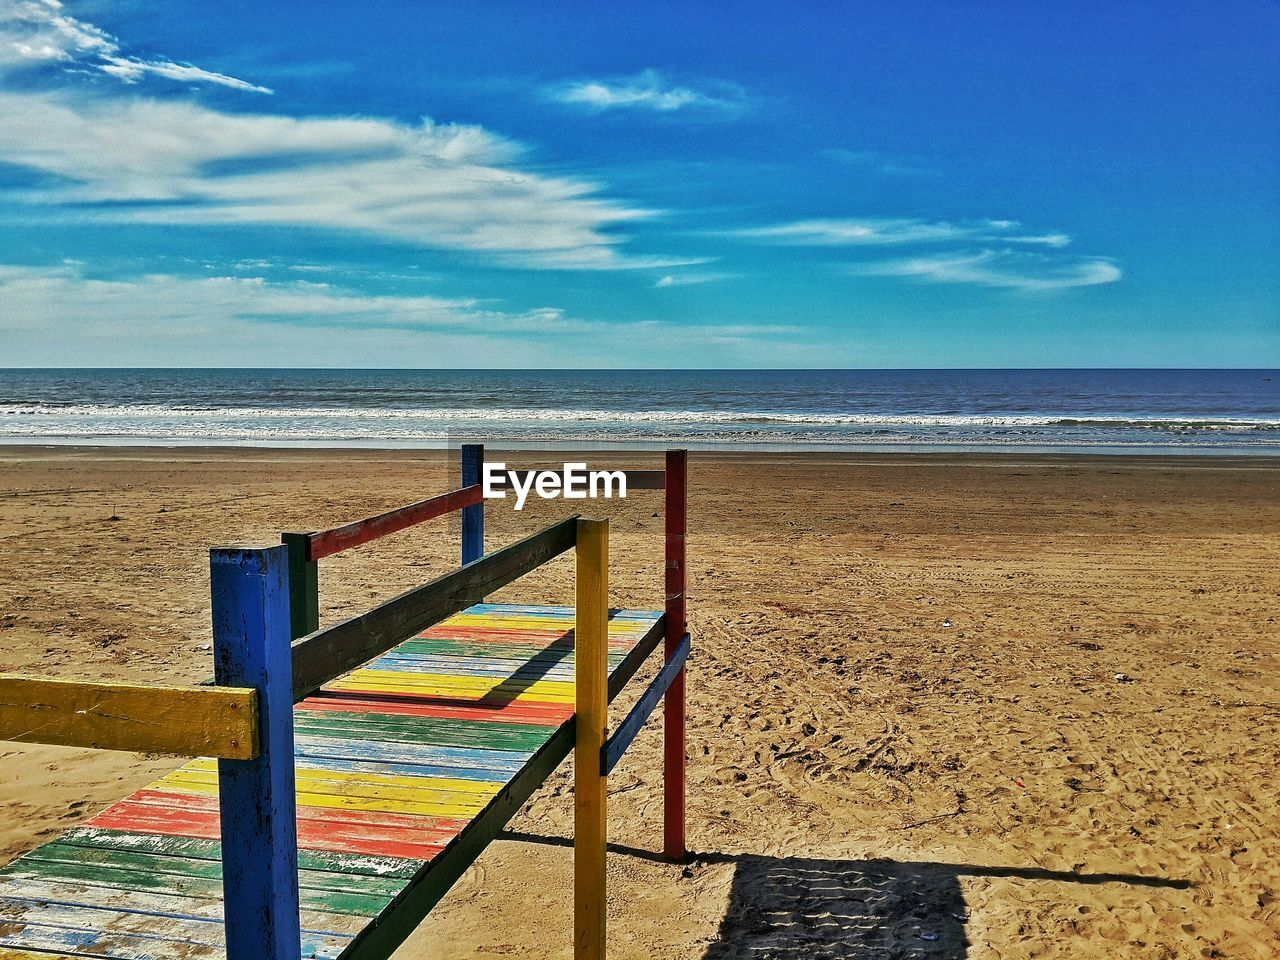 sea, horizon over water, beach, sand, sky, tranquil scene, scenics, tranquility, nature, water, beauty in nature, day, railing, sunlight, no people, outdoors, wood - material, blue, cloud - sky, vacations